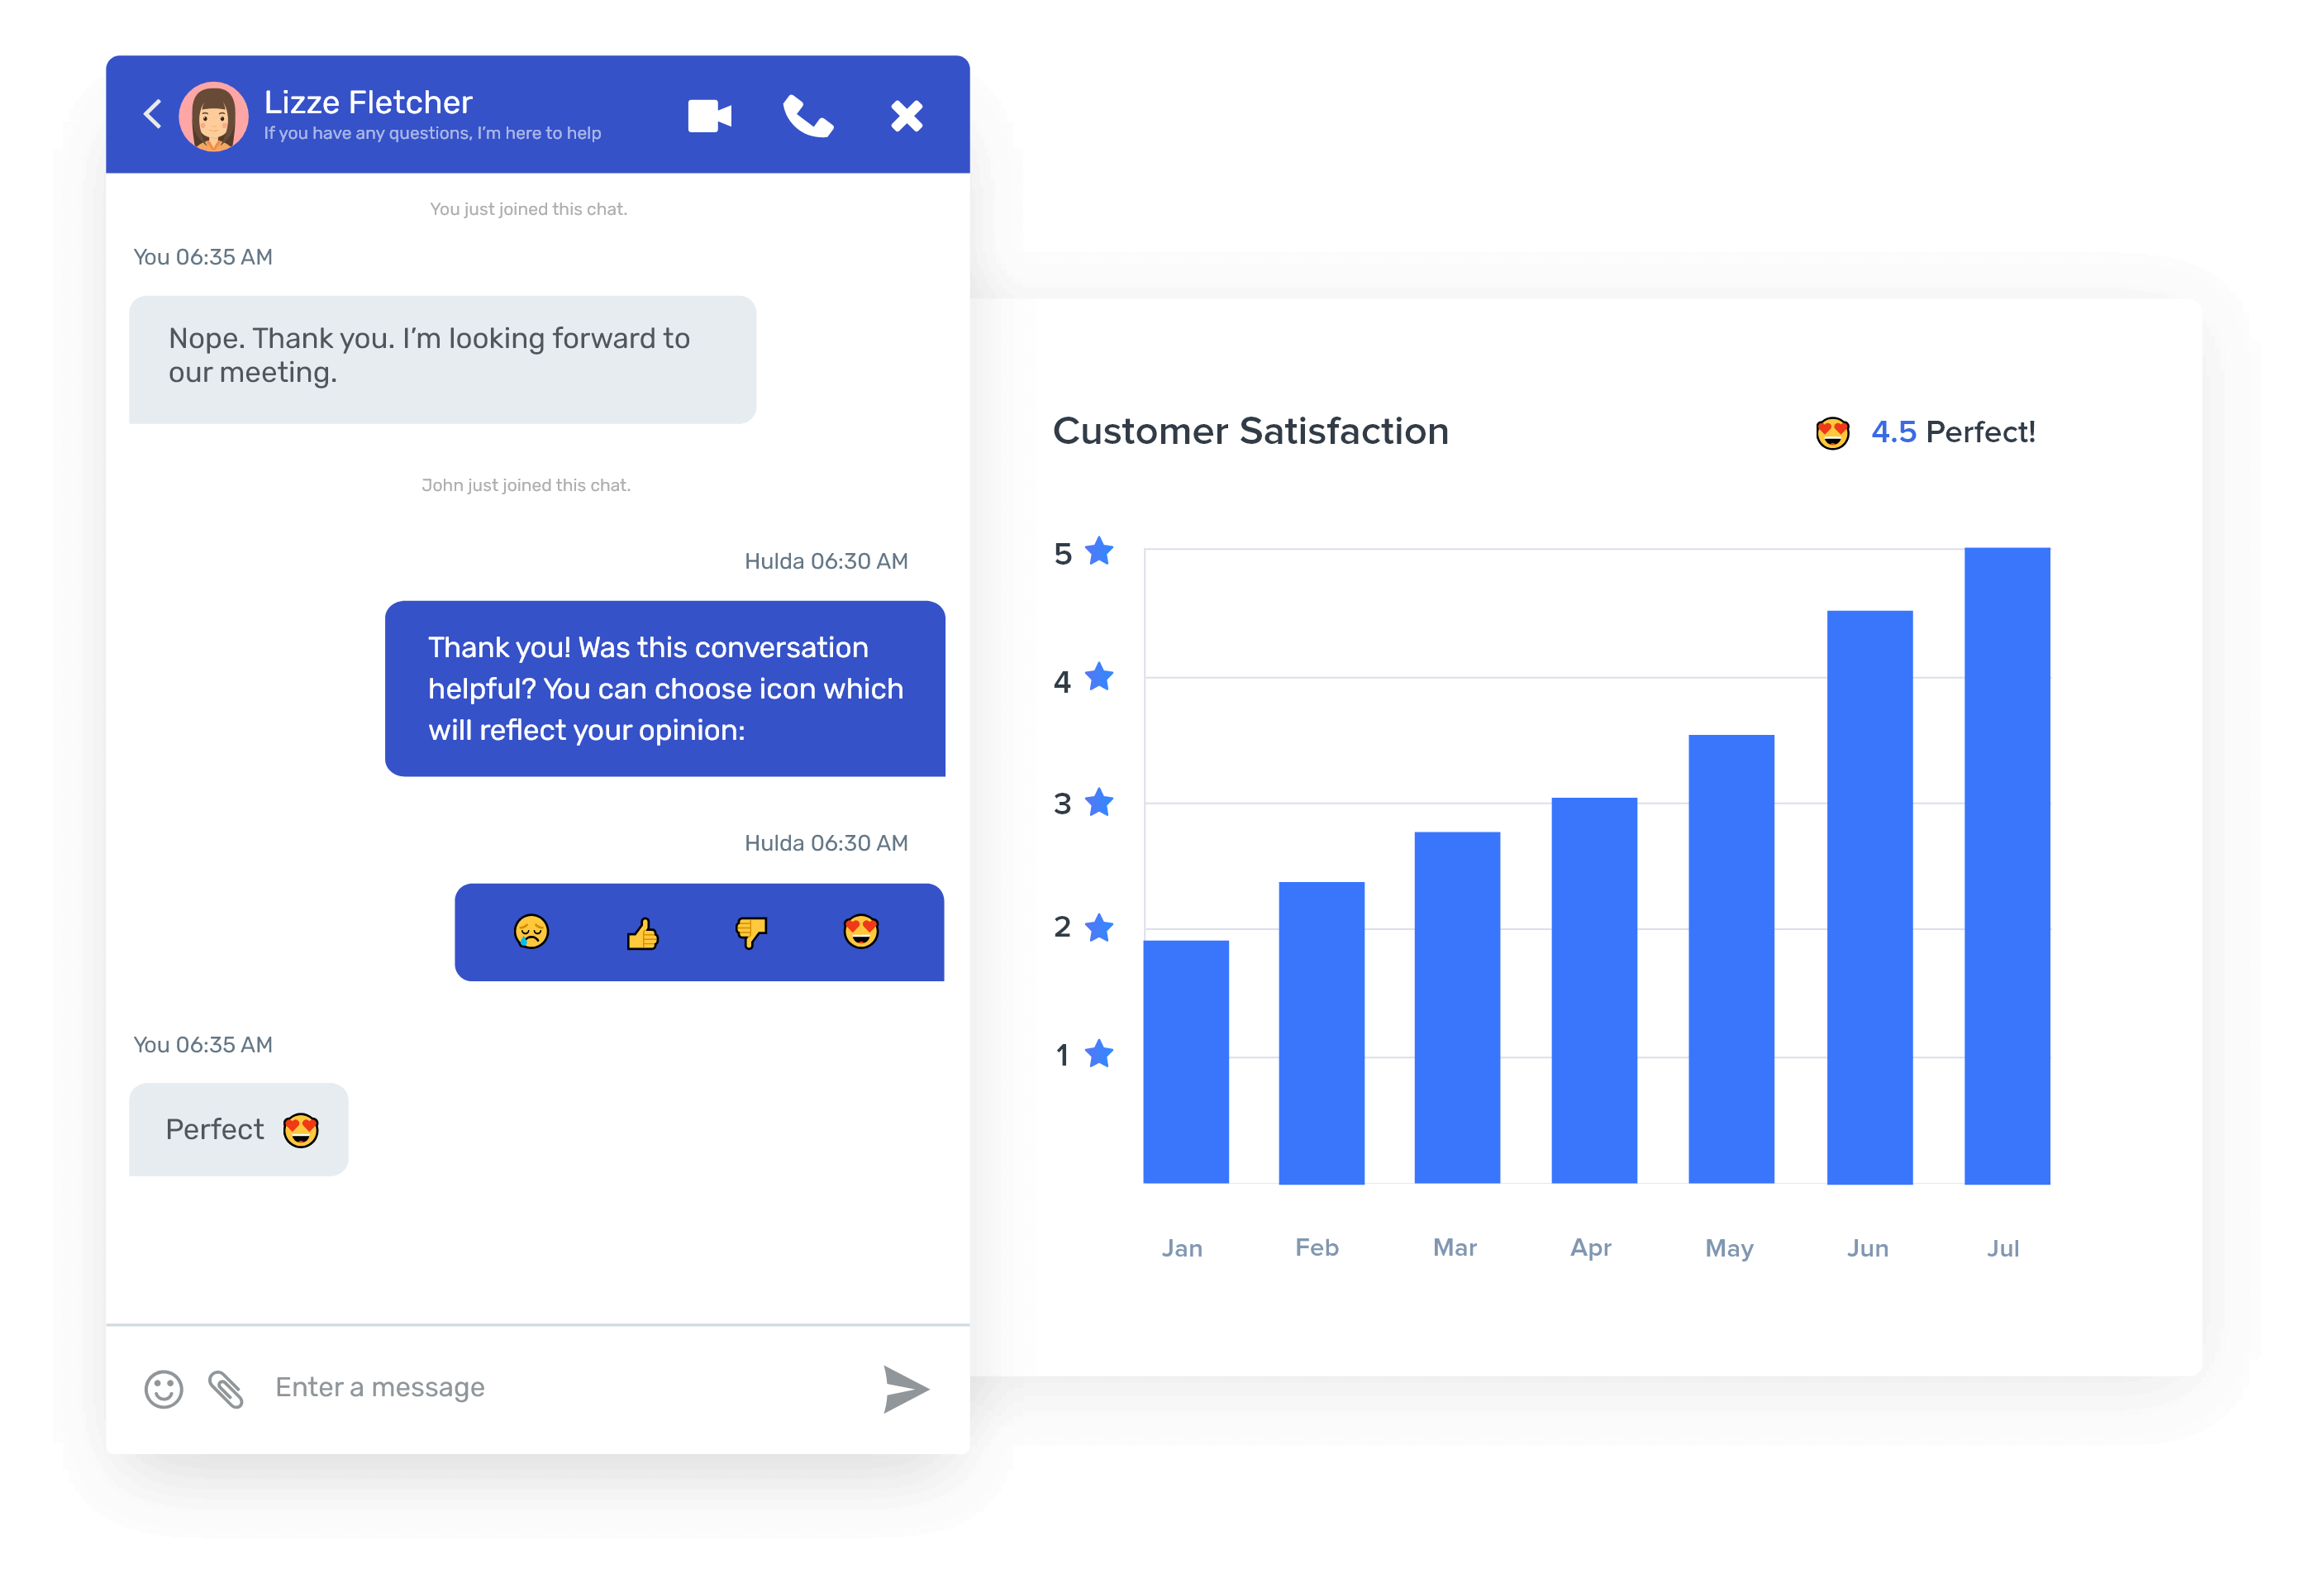 Data to improve your Customer Service